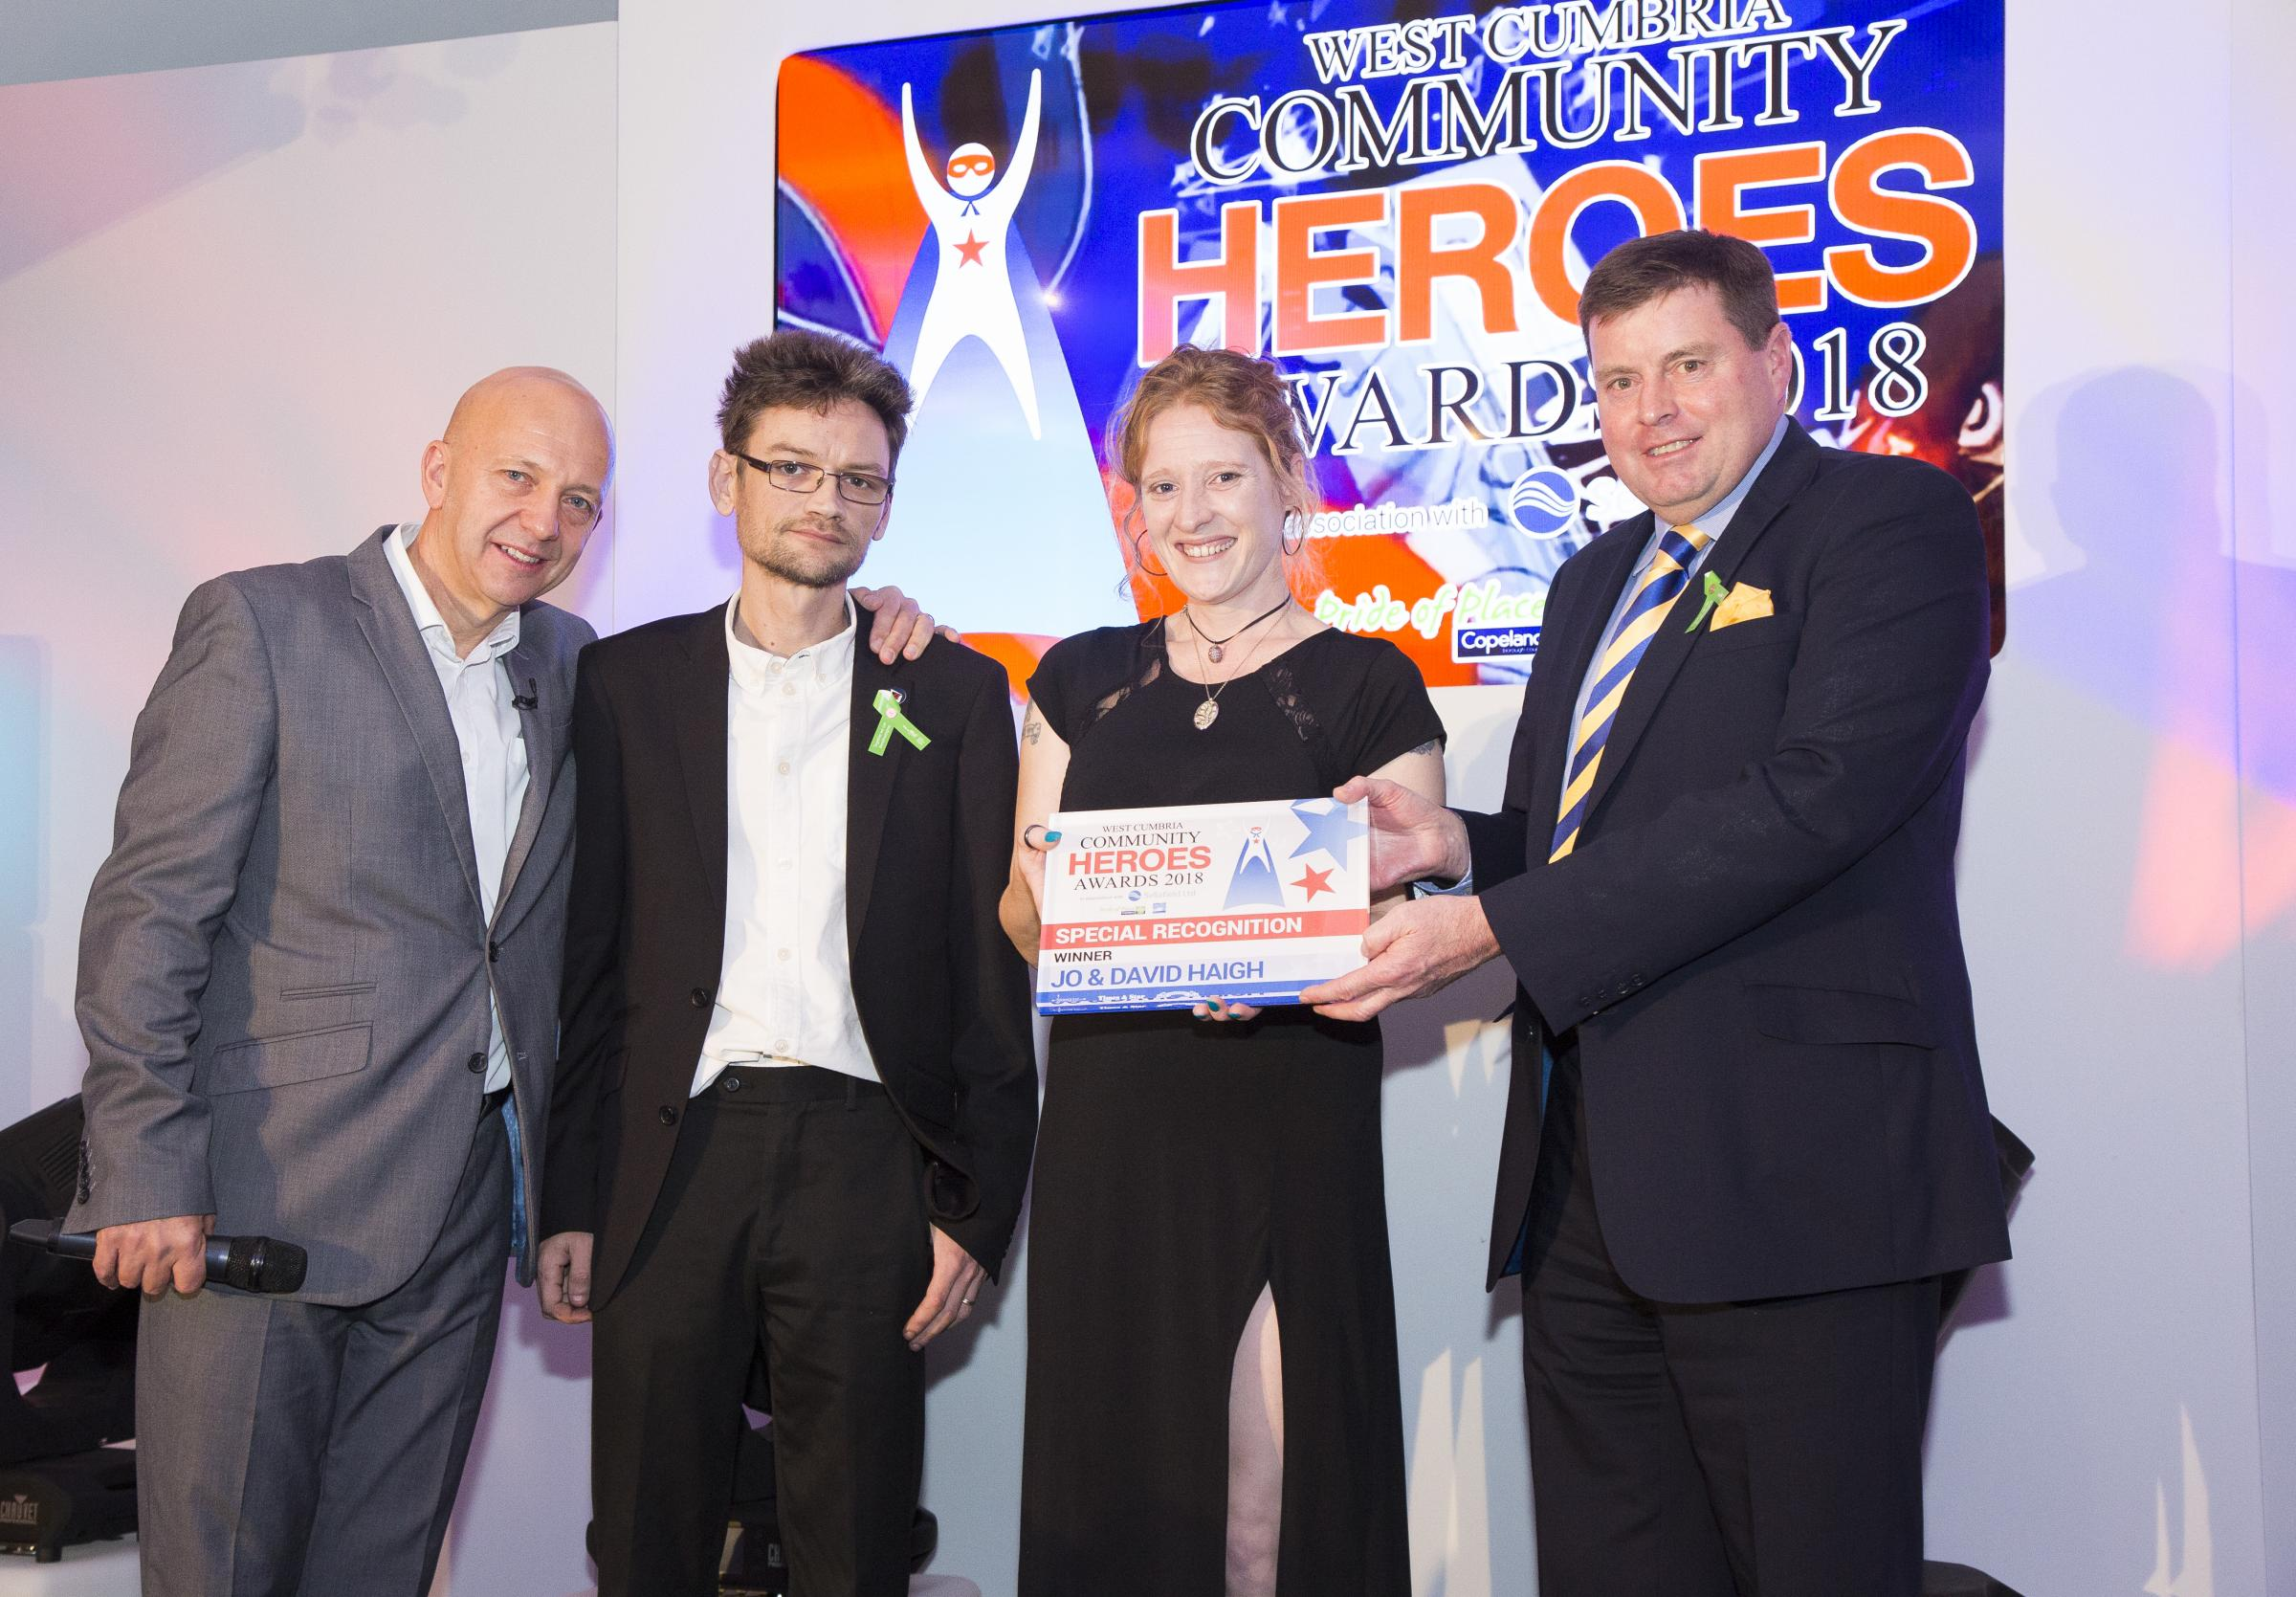 Left to right: Robbie Dee, Host, David & Jo Haigh recieving Special recognition Award, Sposnor, Peter McCall, police & Crime Commissioner,from Cumbria Police.